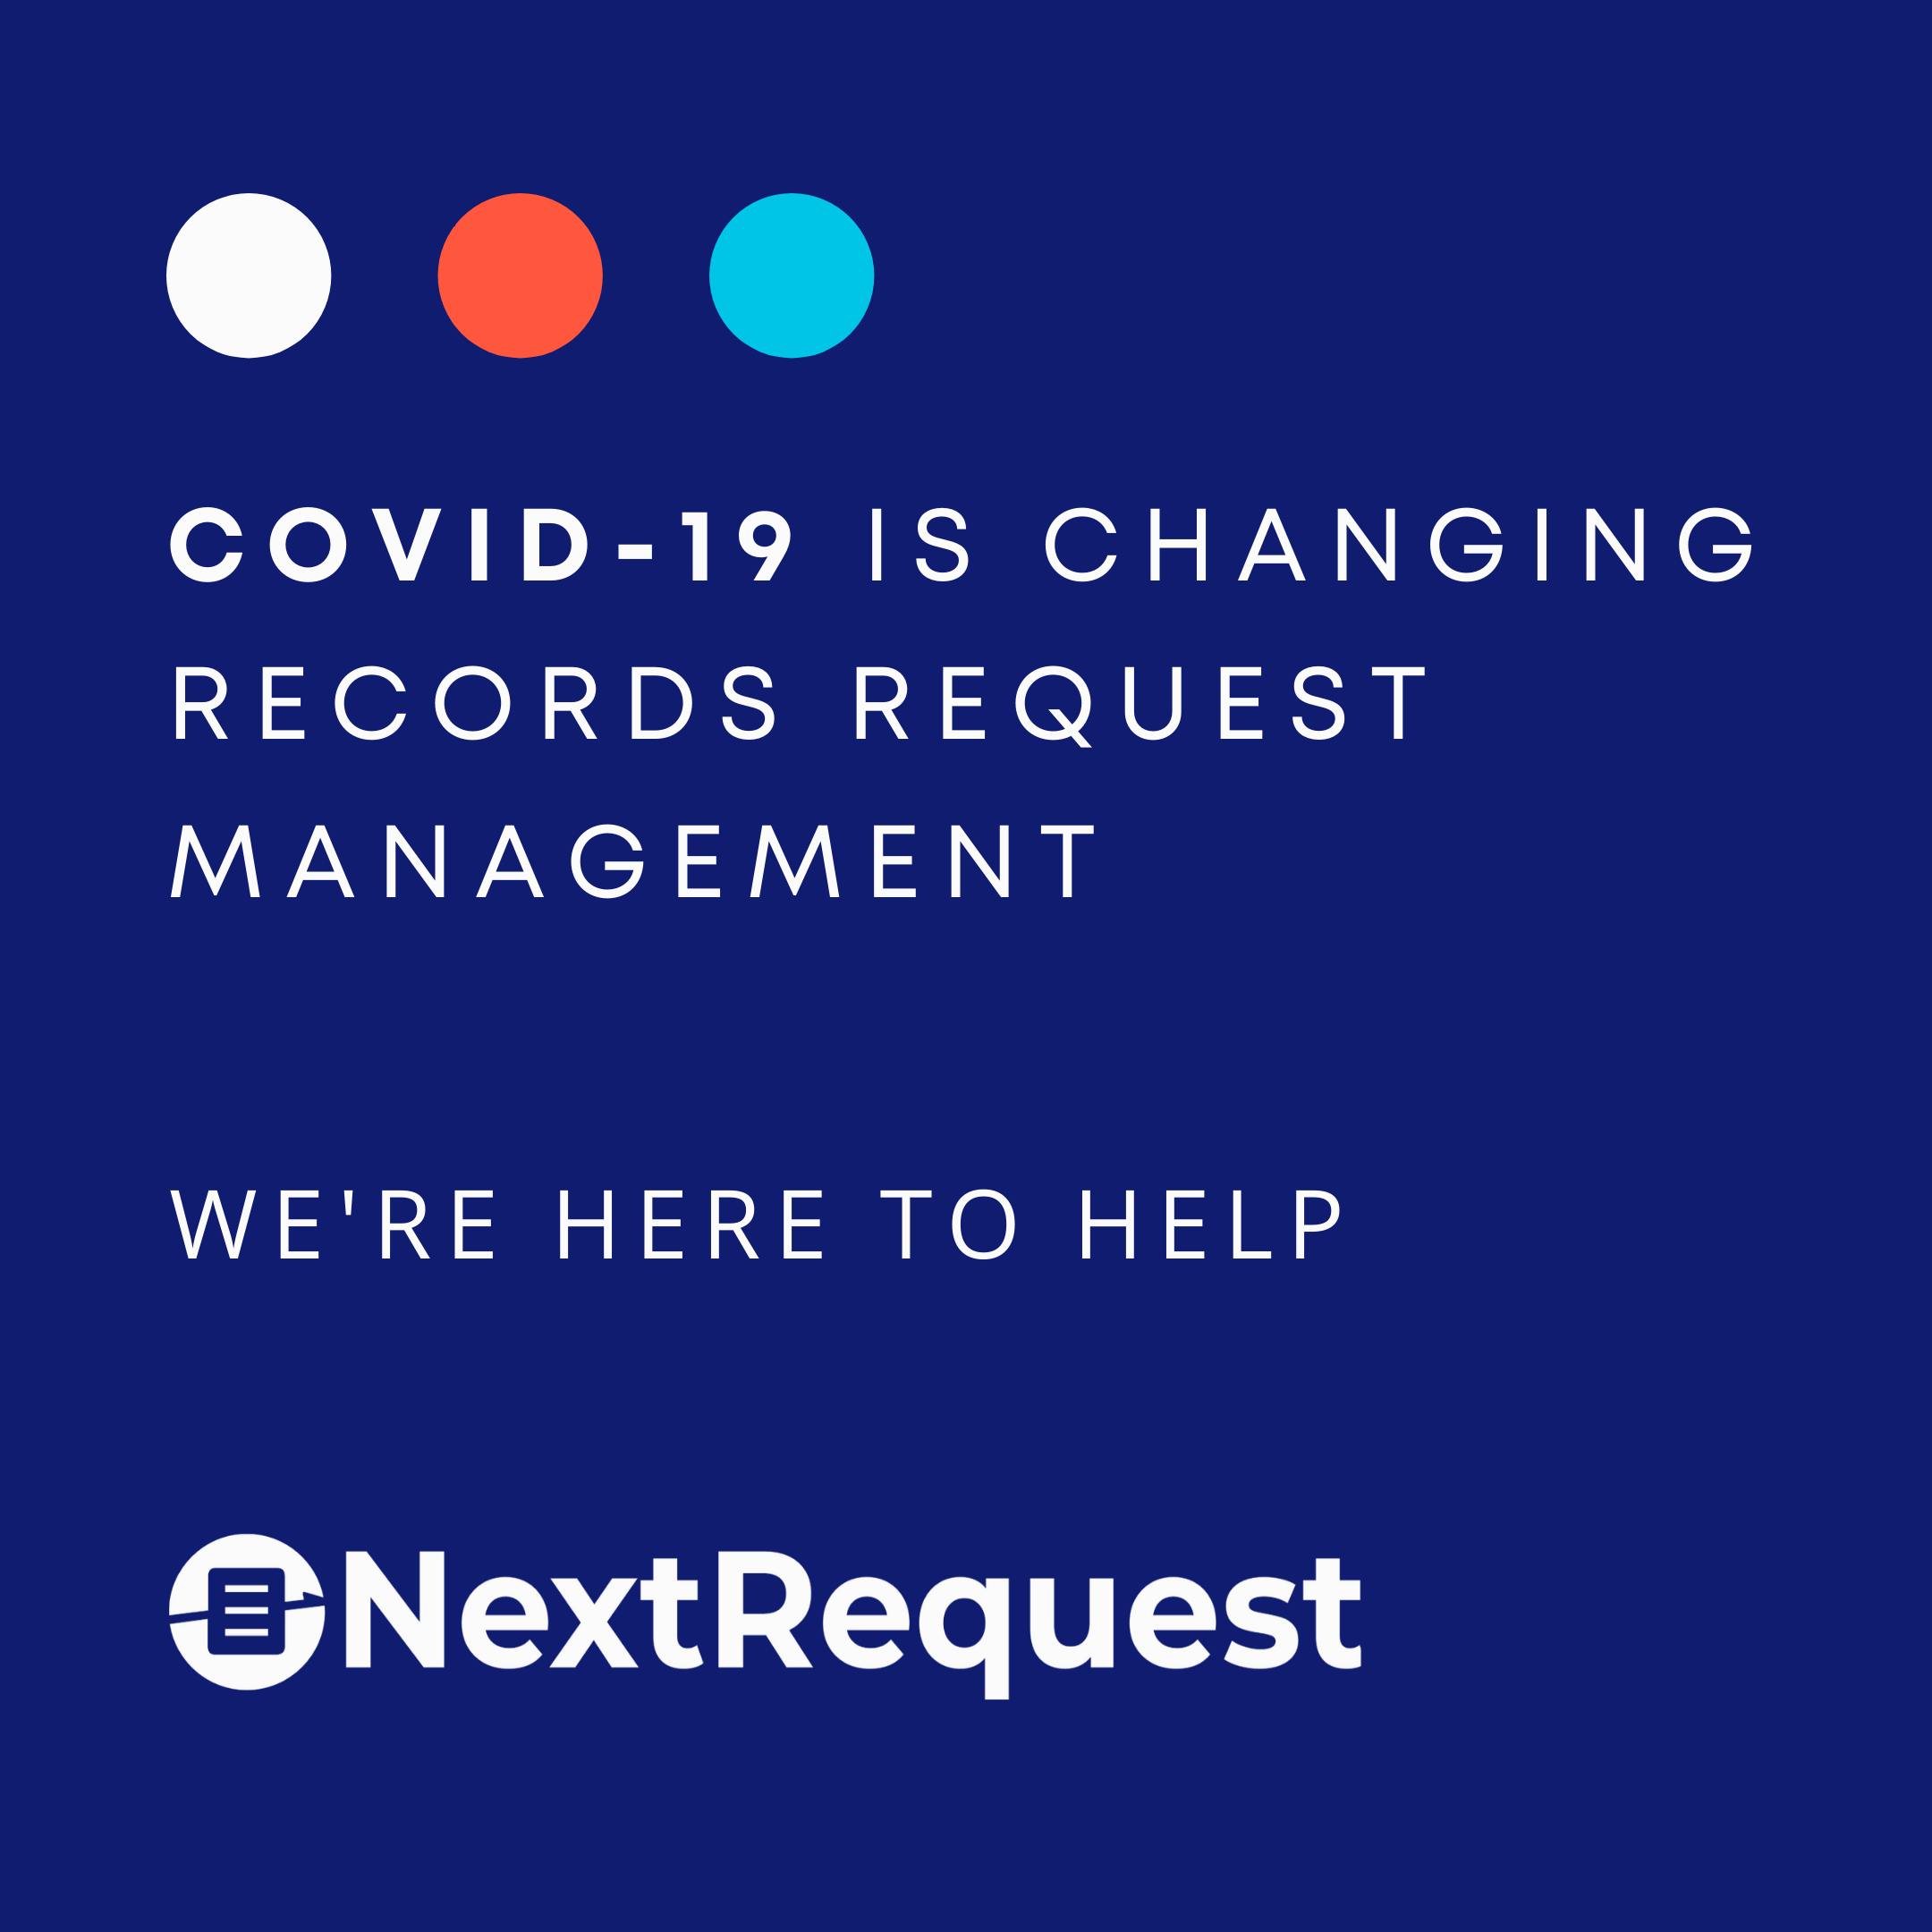 COVID-19 is Changing Records Request Management. We're Here to Help.